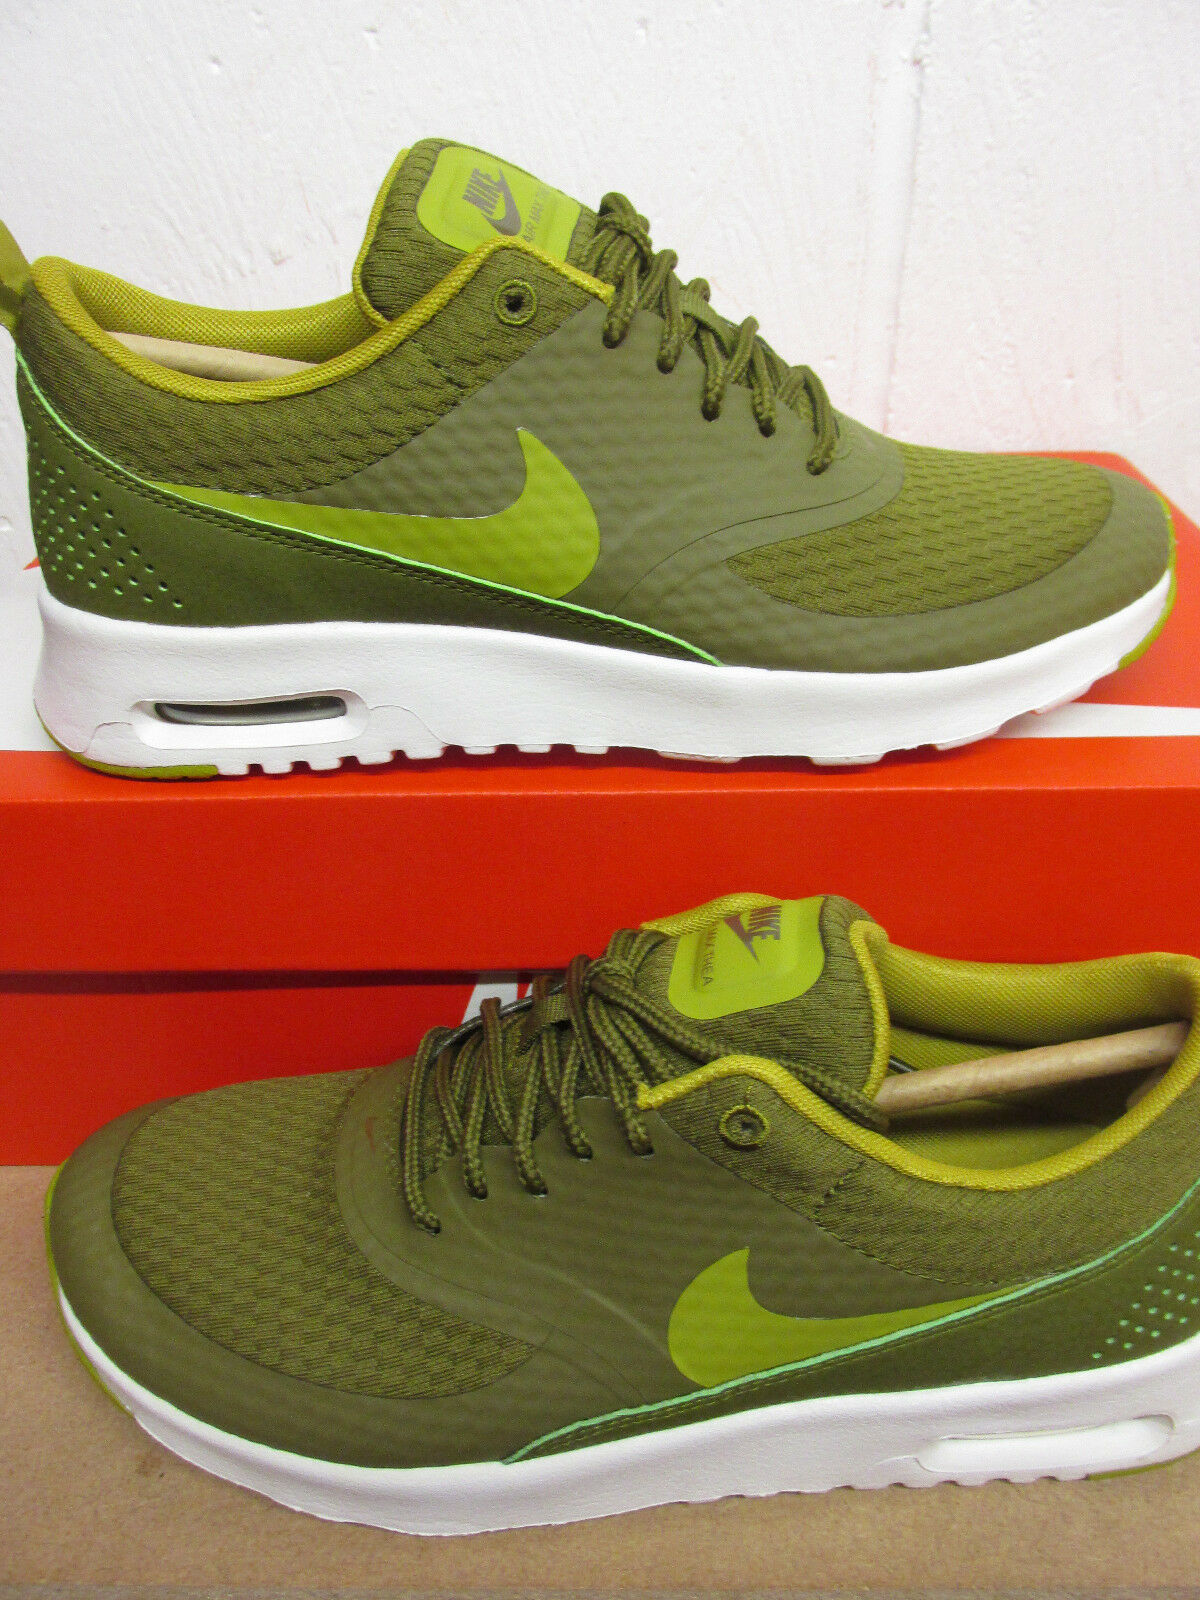 nike womens air max thea TXT trainers 819639 301 sneakers shoes